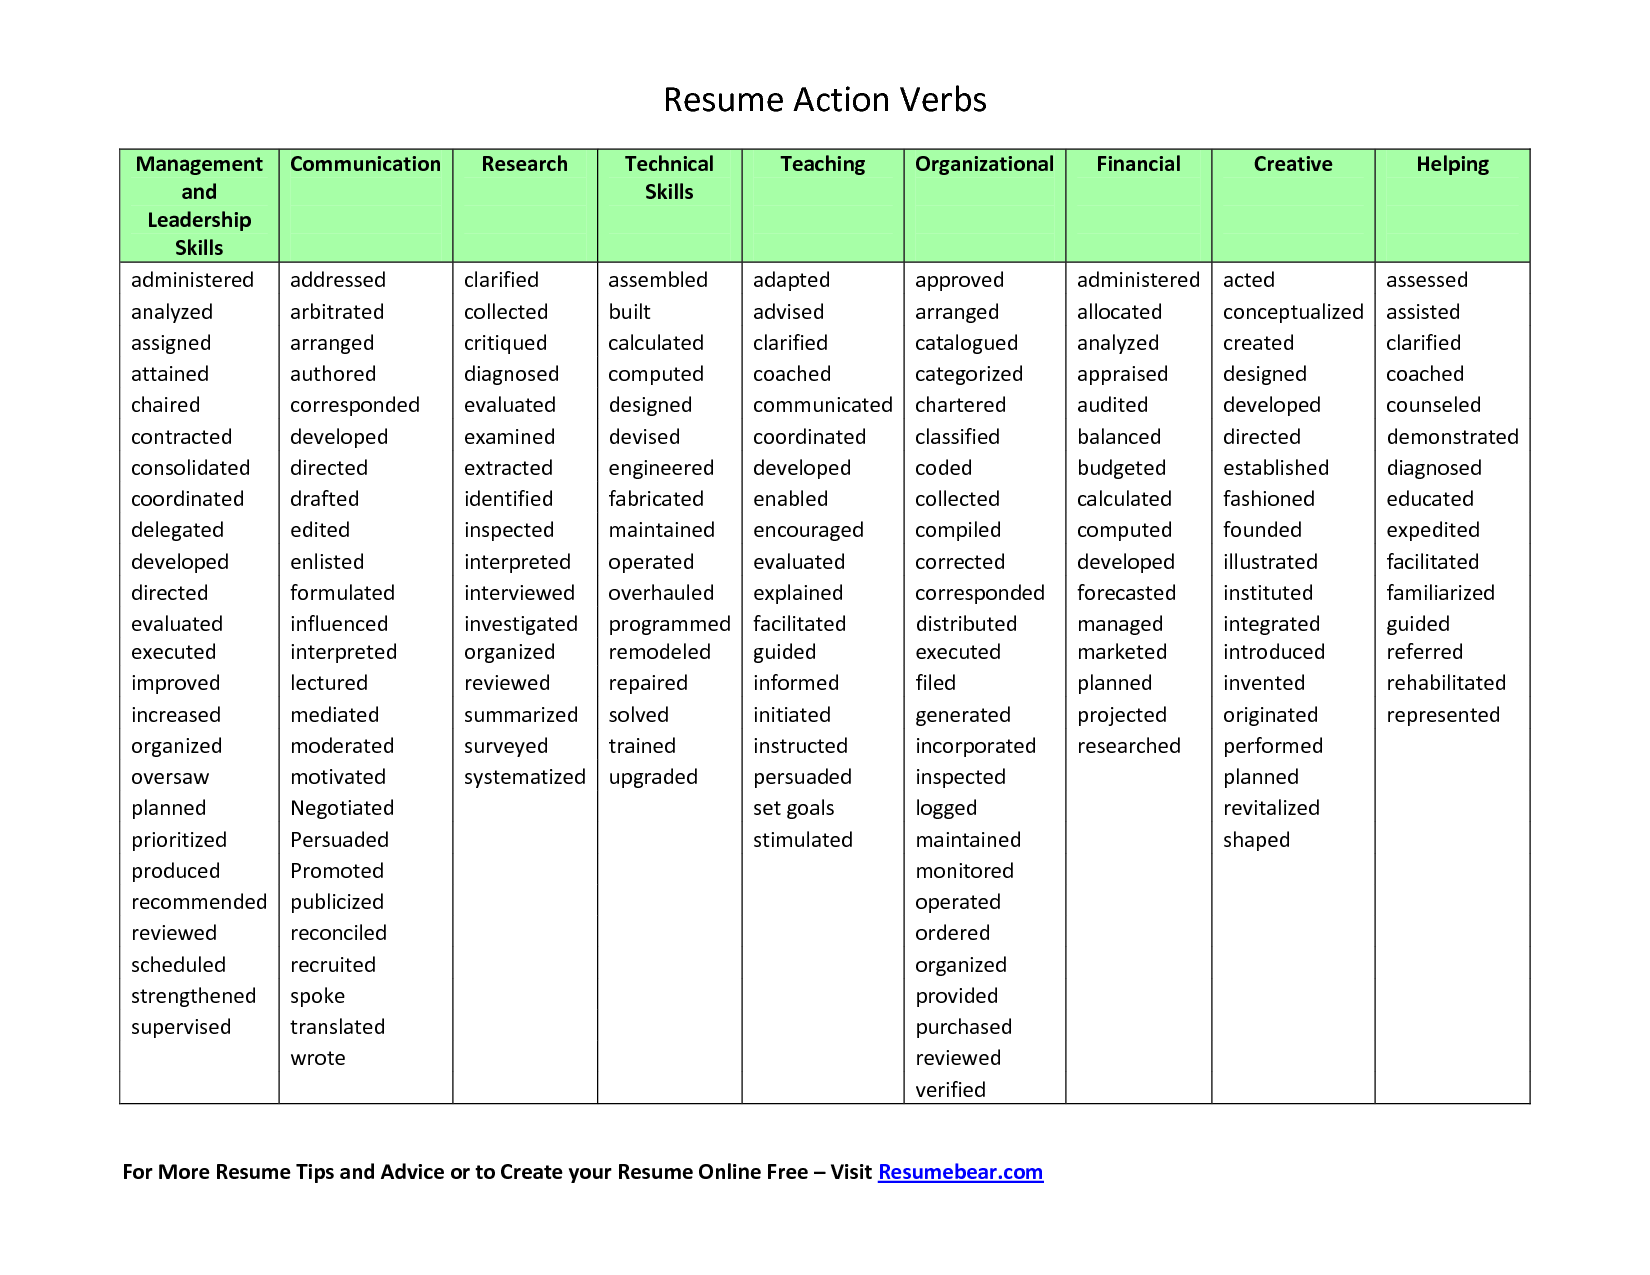 resume Verbs For Resume Skills resume verbs 2014 strong for skills action printable chart from bear application